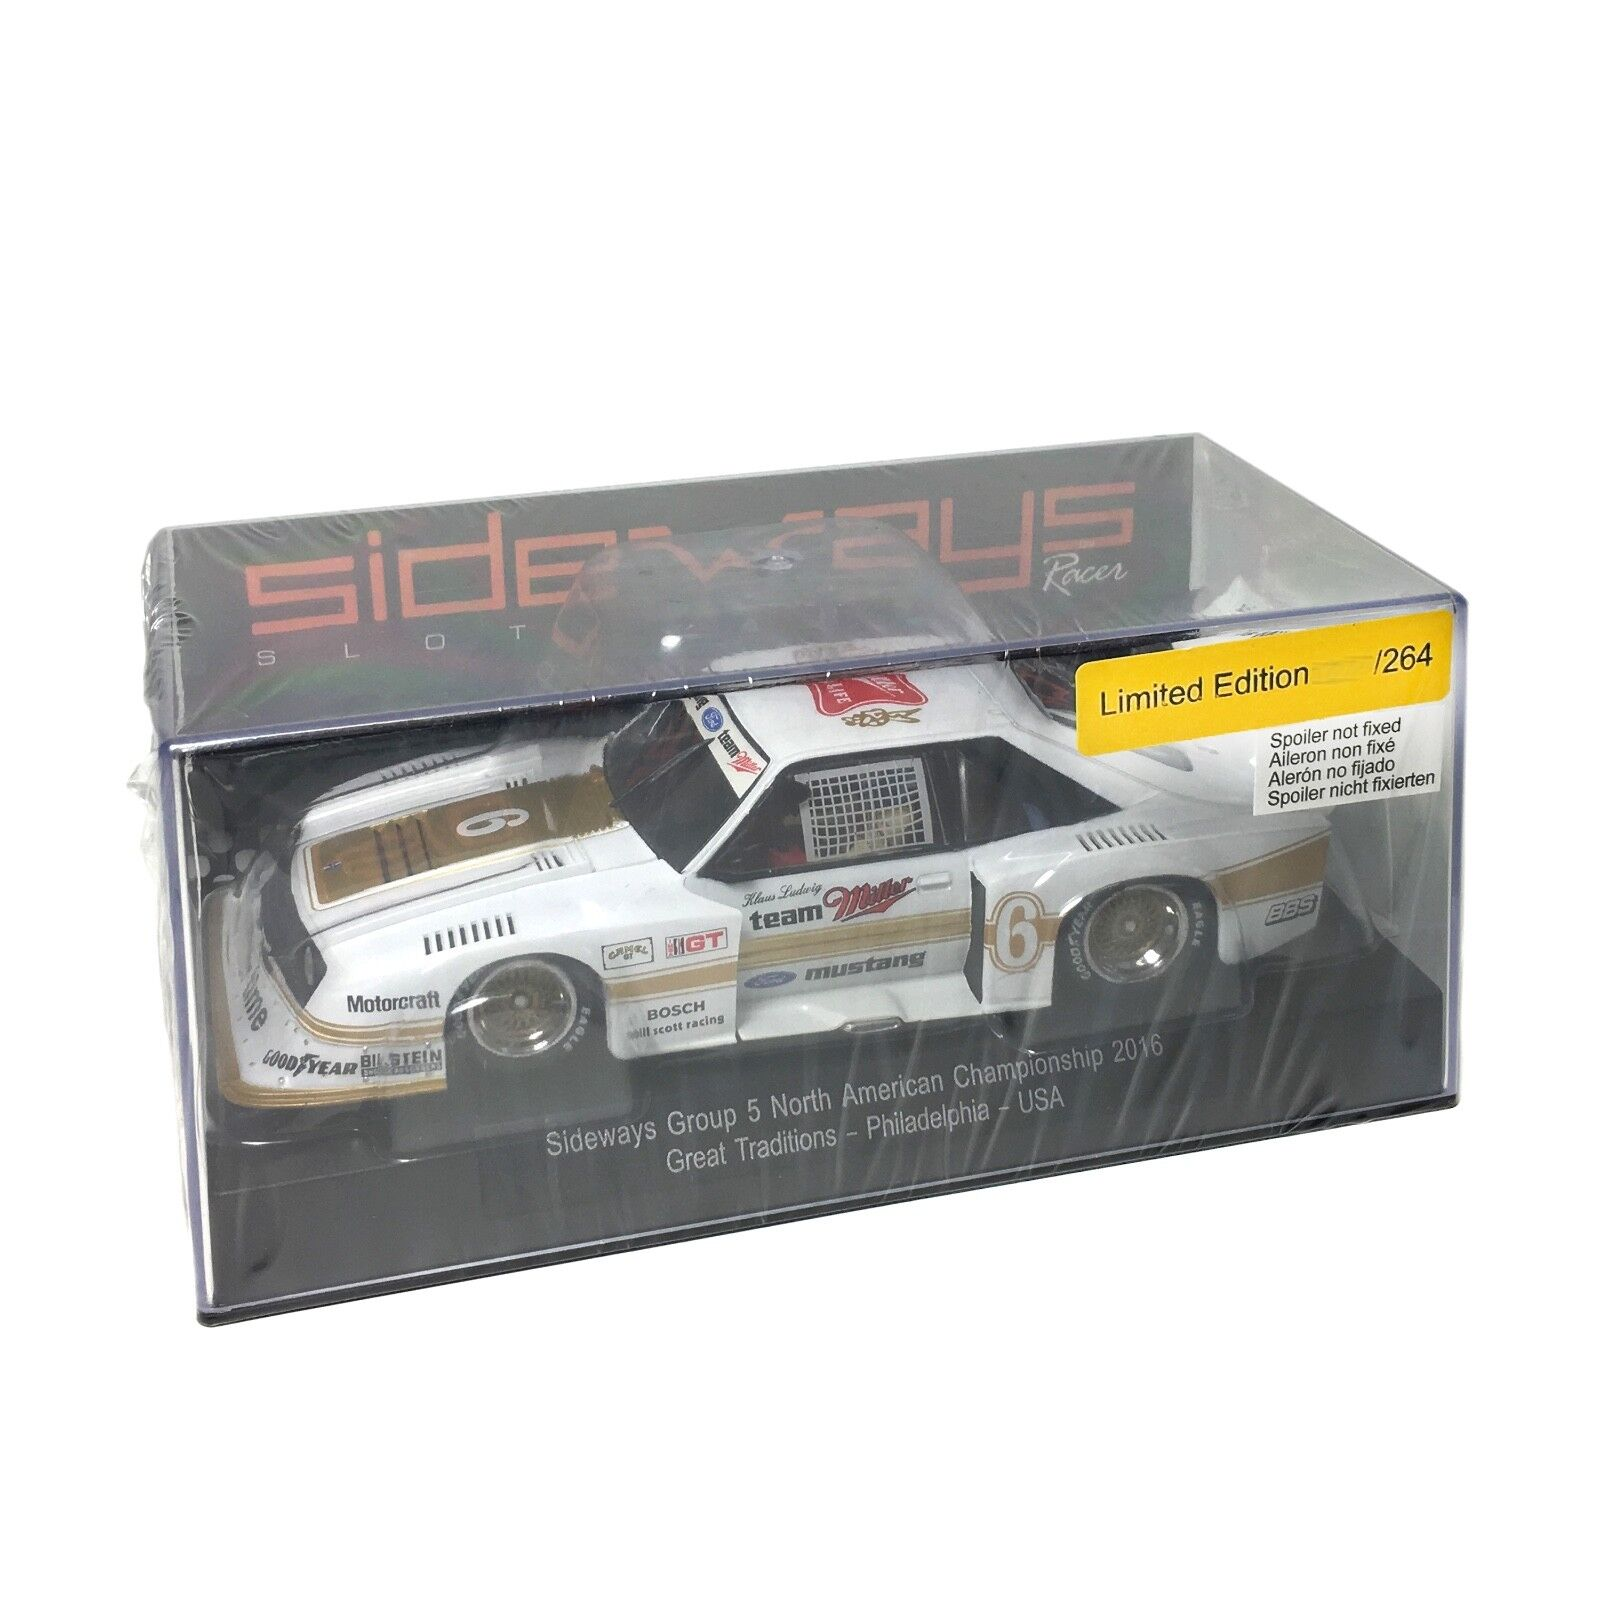 Sideways by Racer SW46 - USA Ford Mustang Turbo Gr.5 Limited Edition Miller 1 32  | Große Auswahl